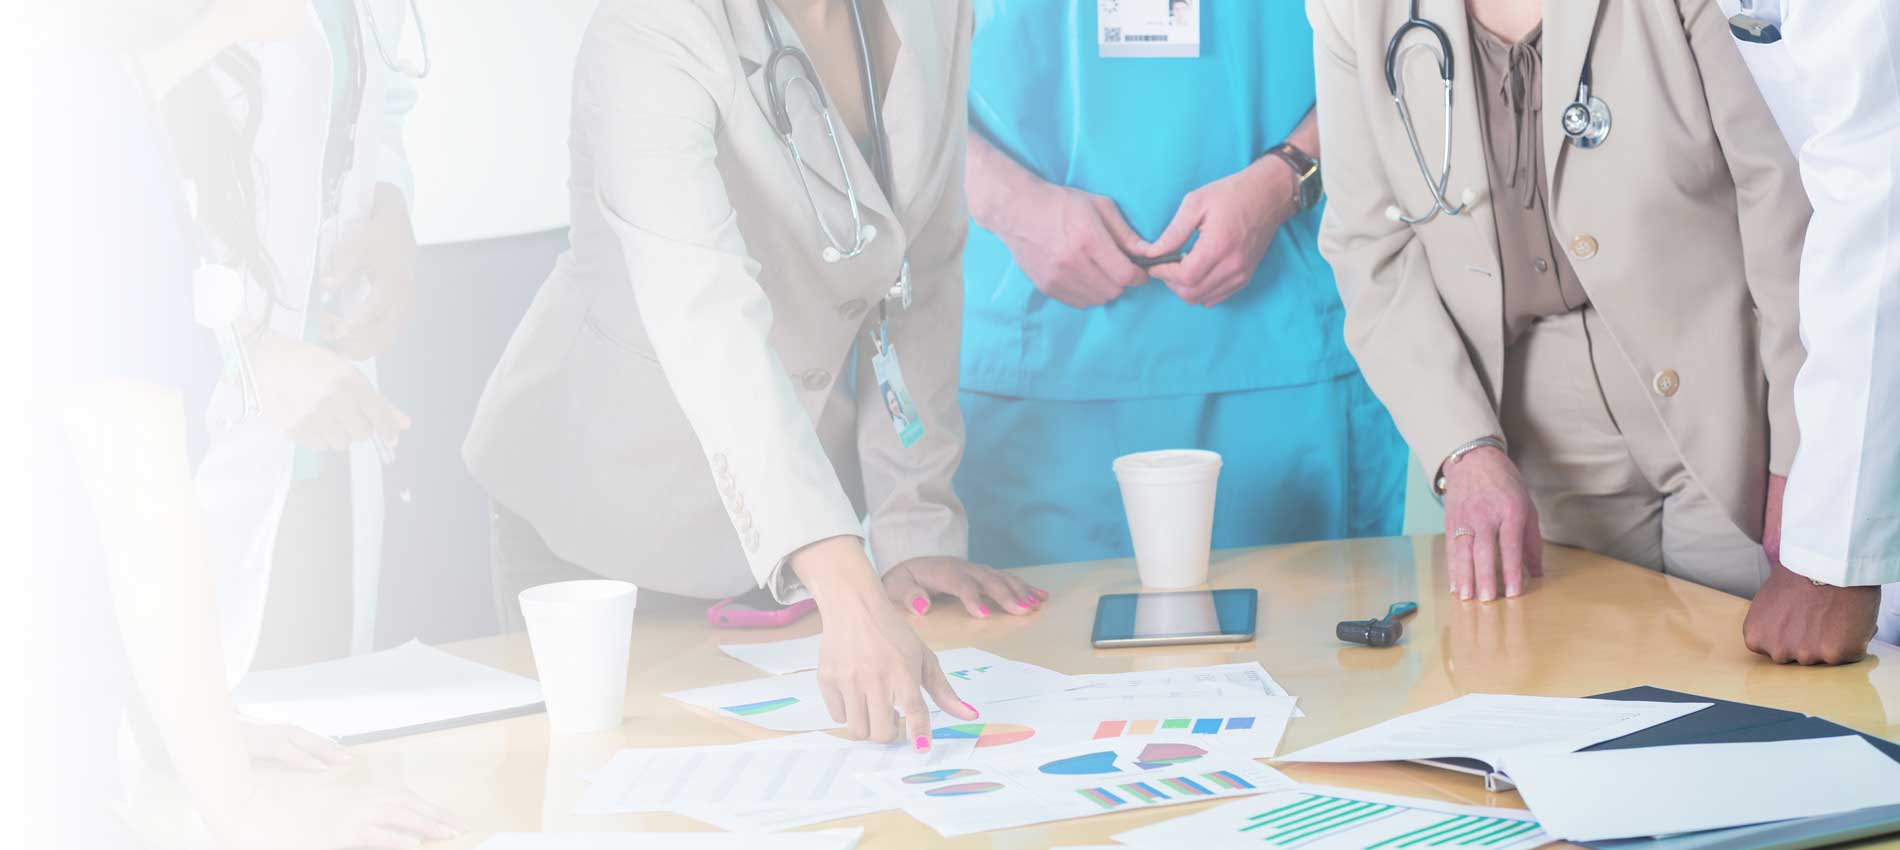 medical personnel looking at charts